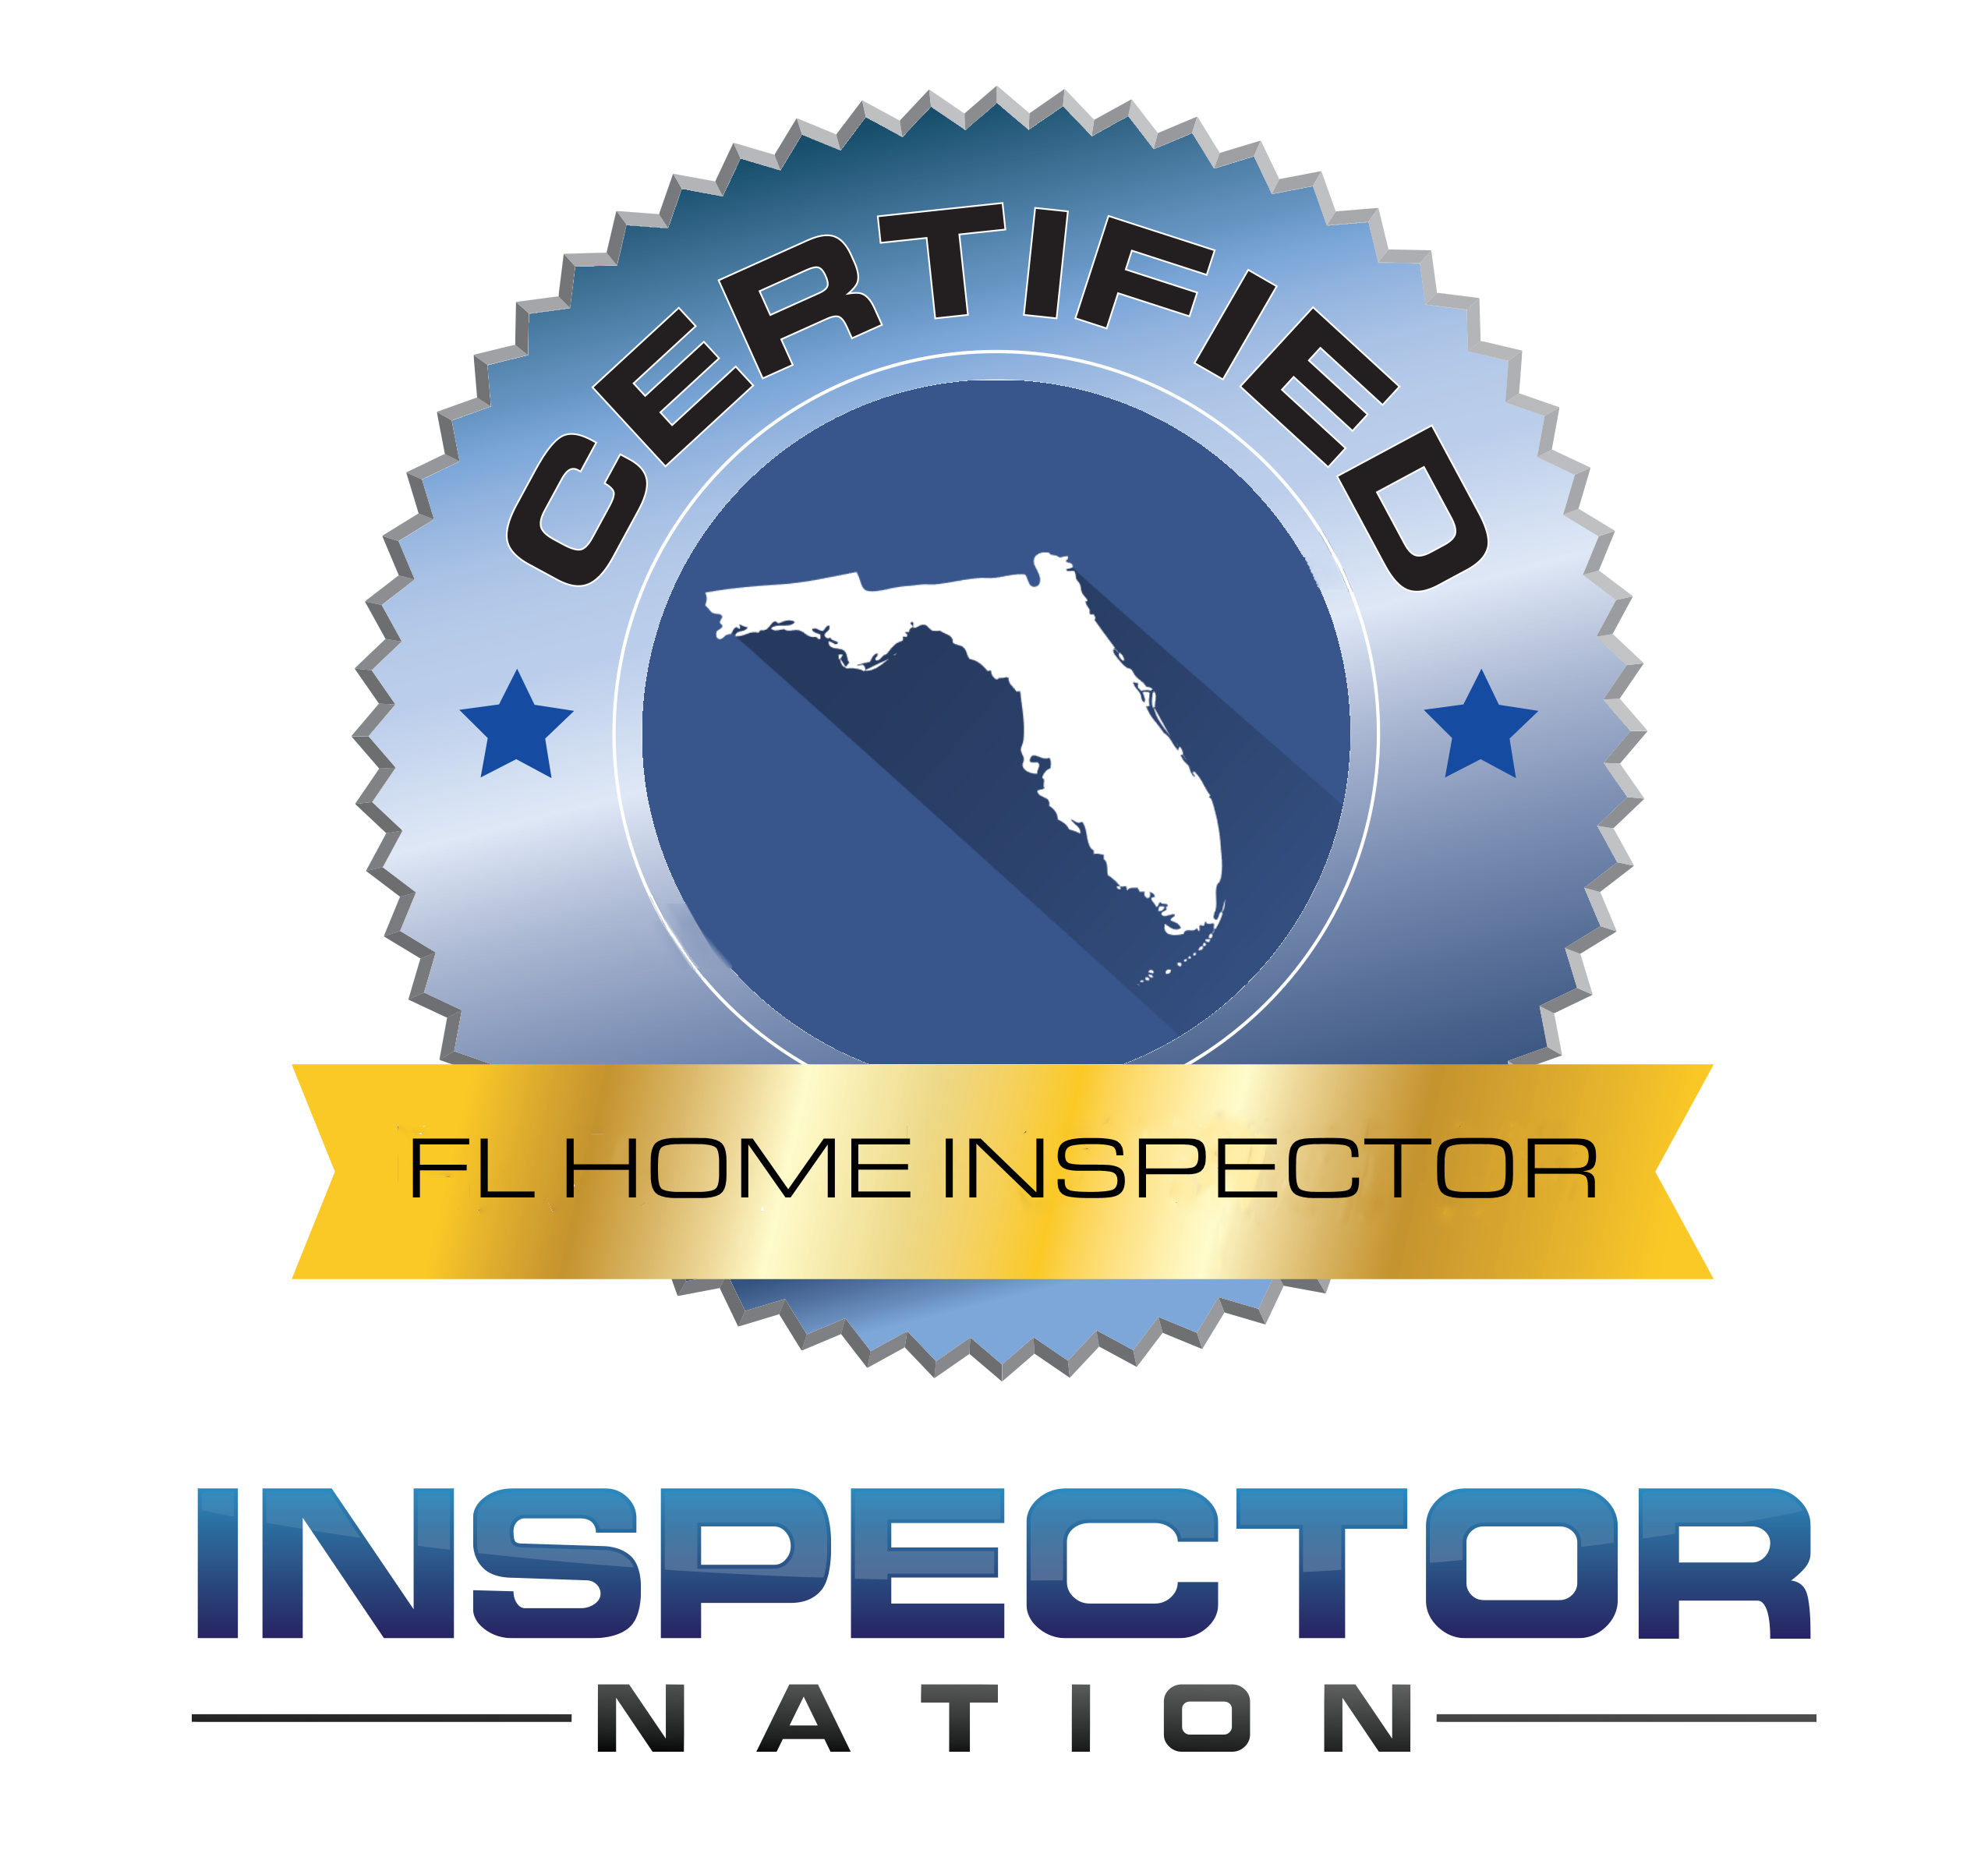 inspector nation certified home inspector badge florida fl